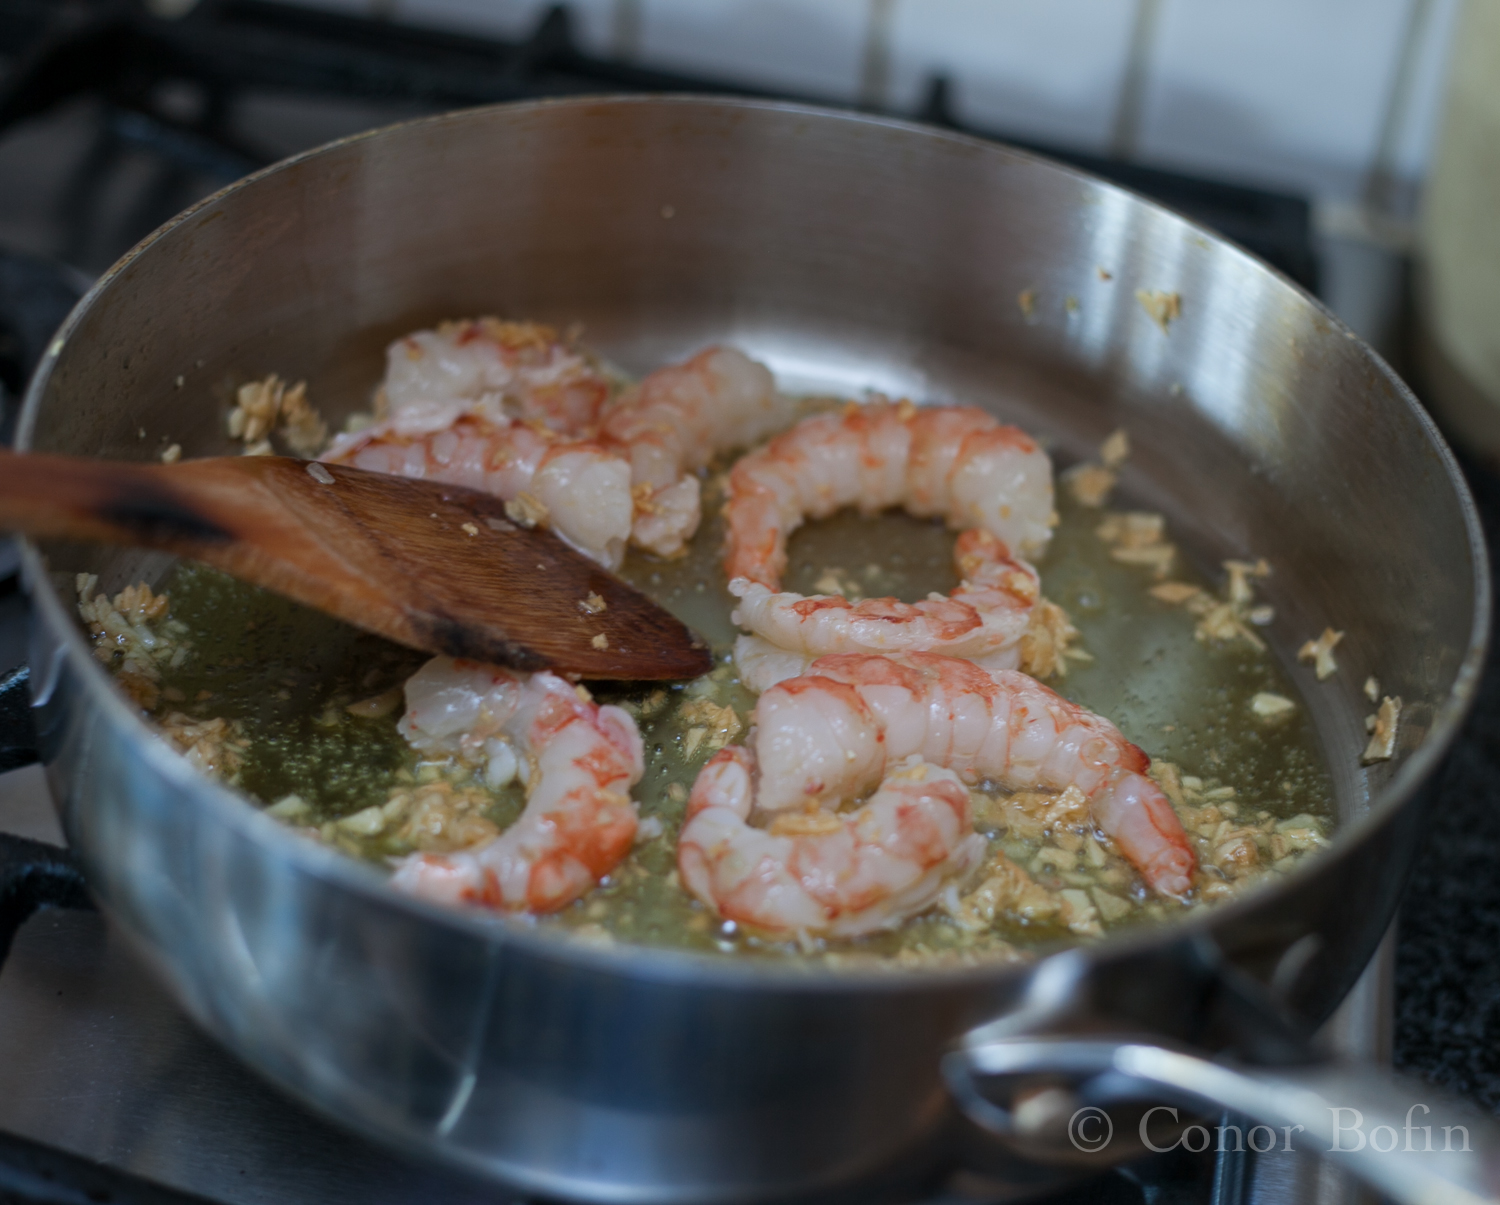 This cooks the prawns and adds lots of garlic flavour to them.